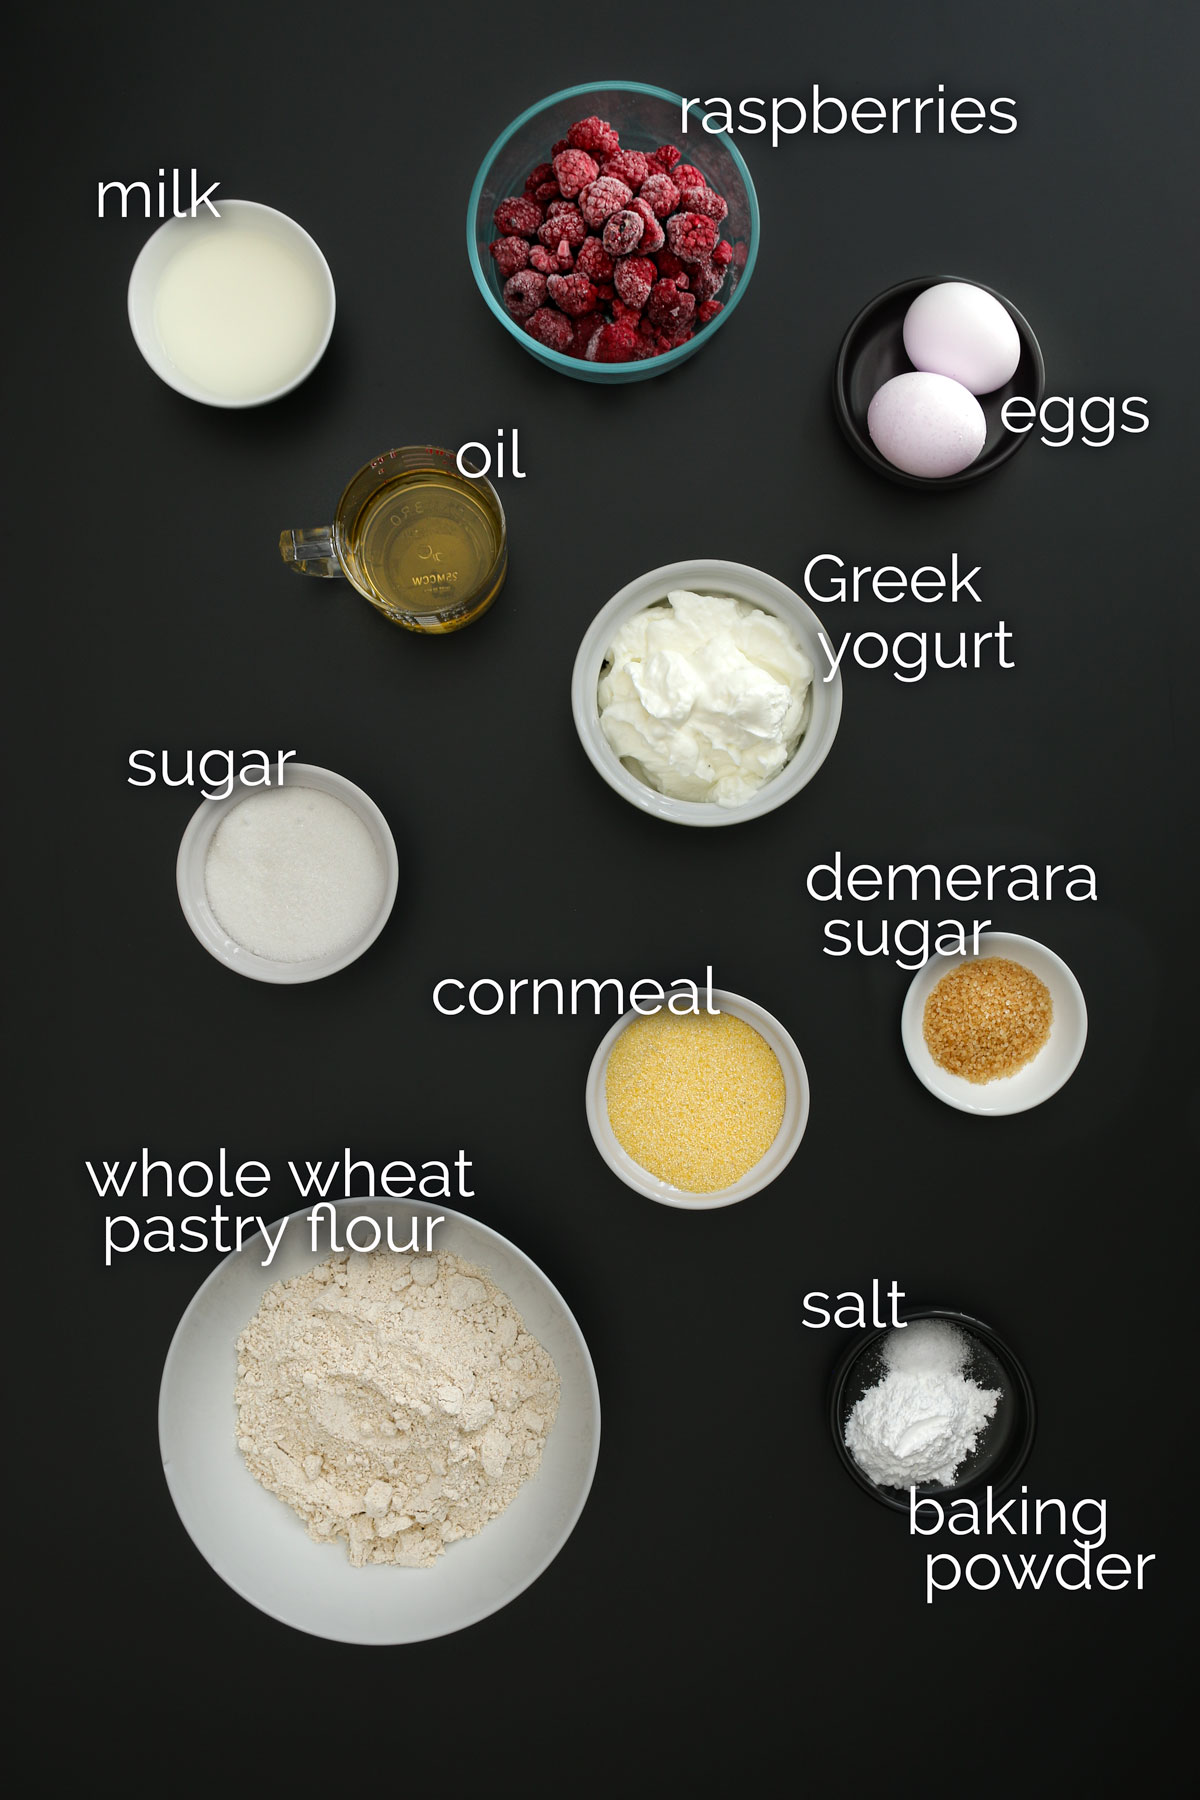 ingredients for breakfast cake measured into dishes and laid out on a black table top for an easy mise en place.